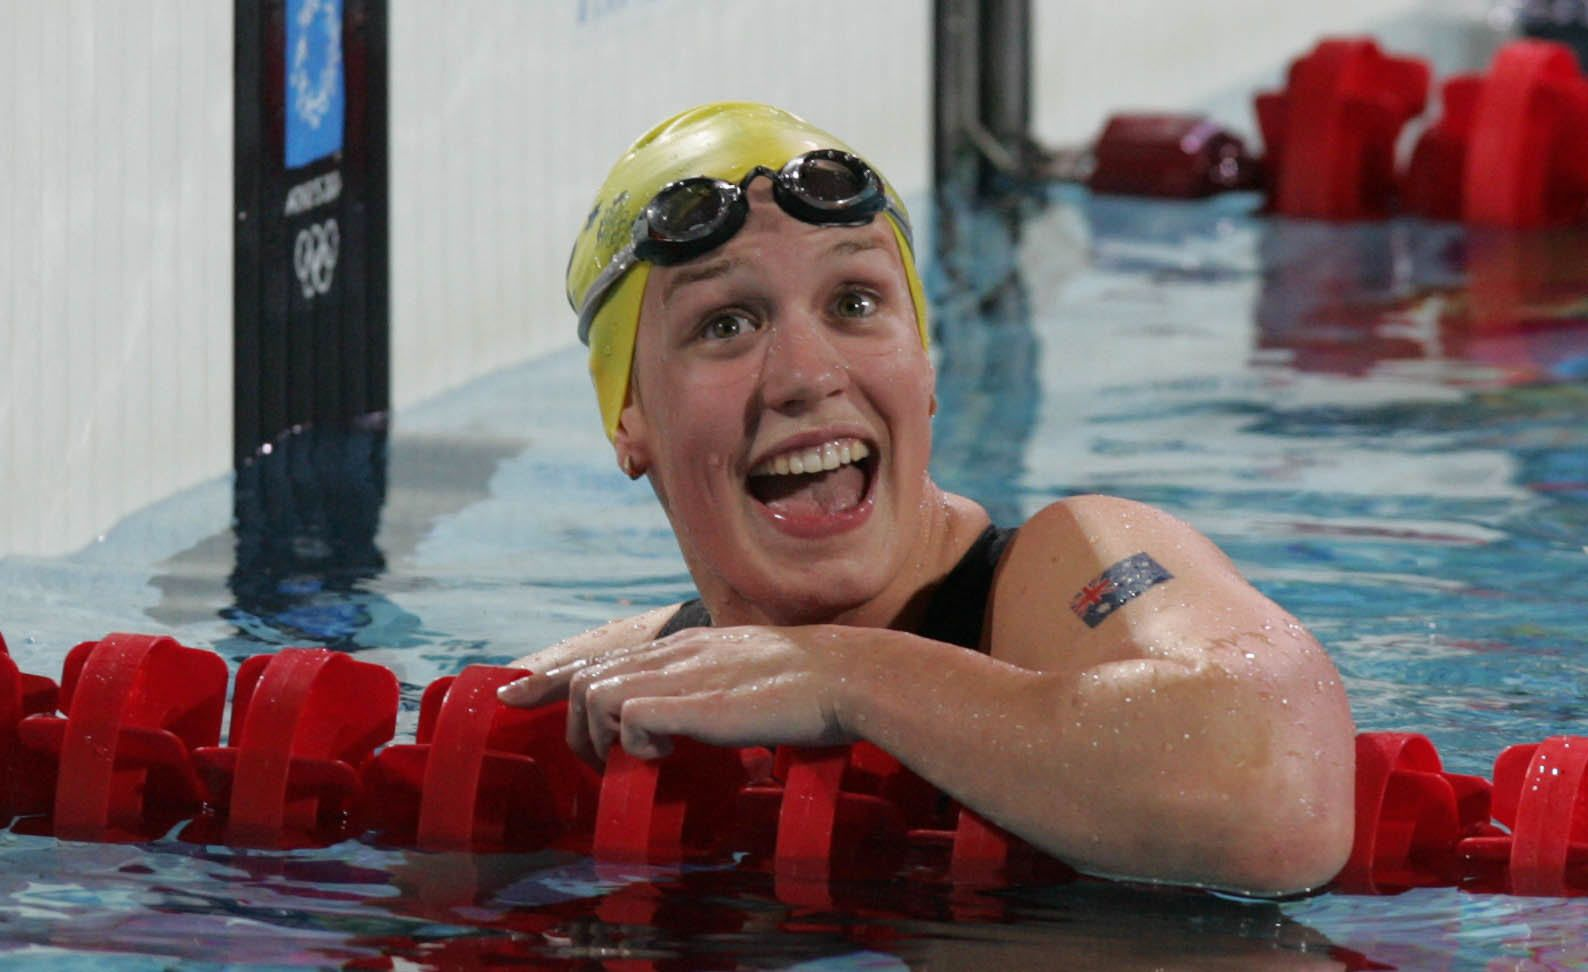 Tokyo Olympics 2021: Australia's swimming gold medallists at this century's Games